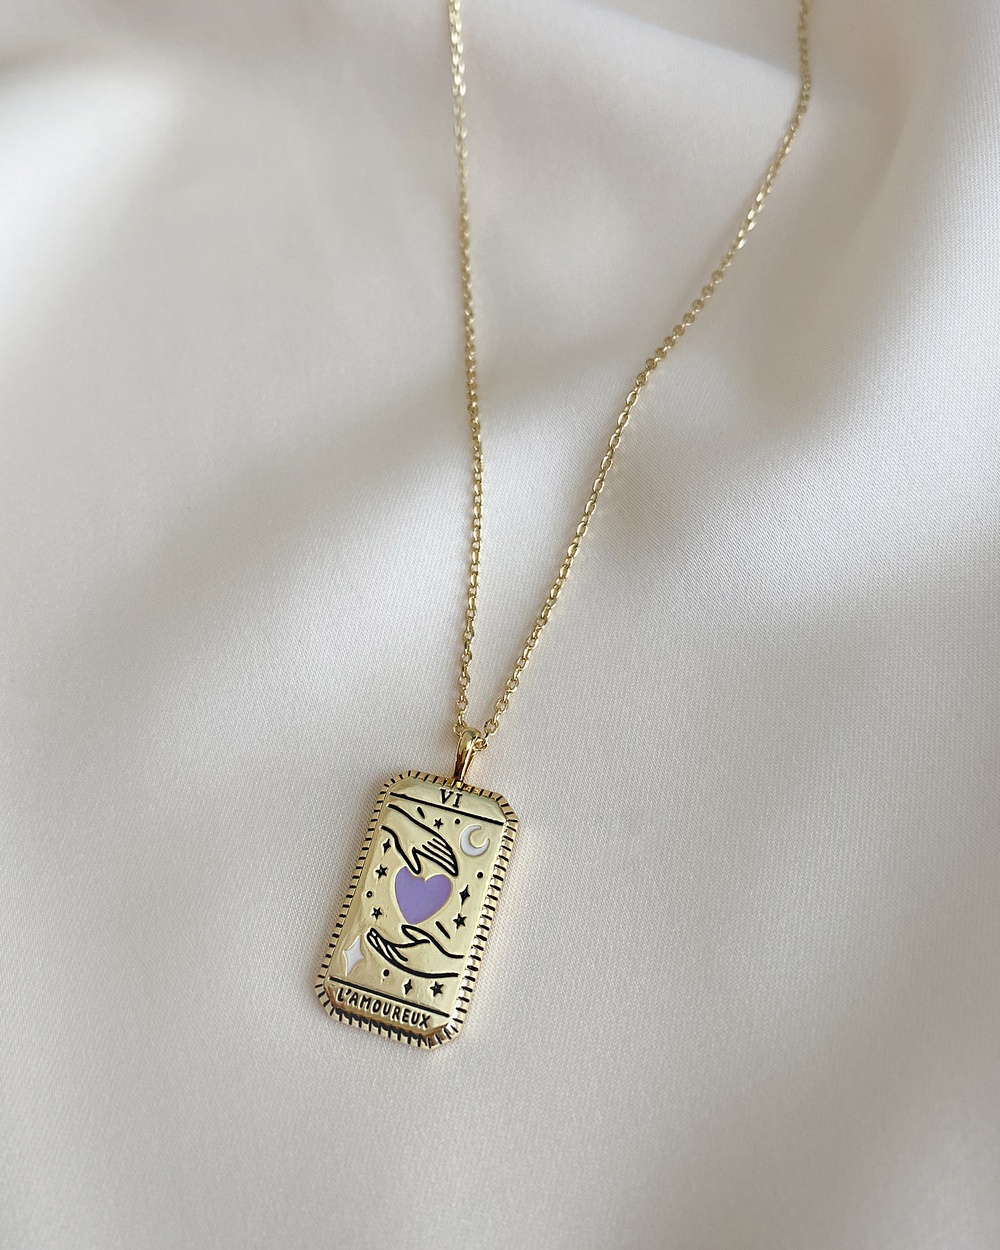 Wanderlust + Co L'Amoureux Gold Tarot Necklace Jewellery Gold